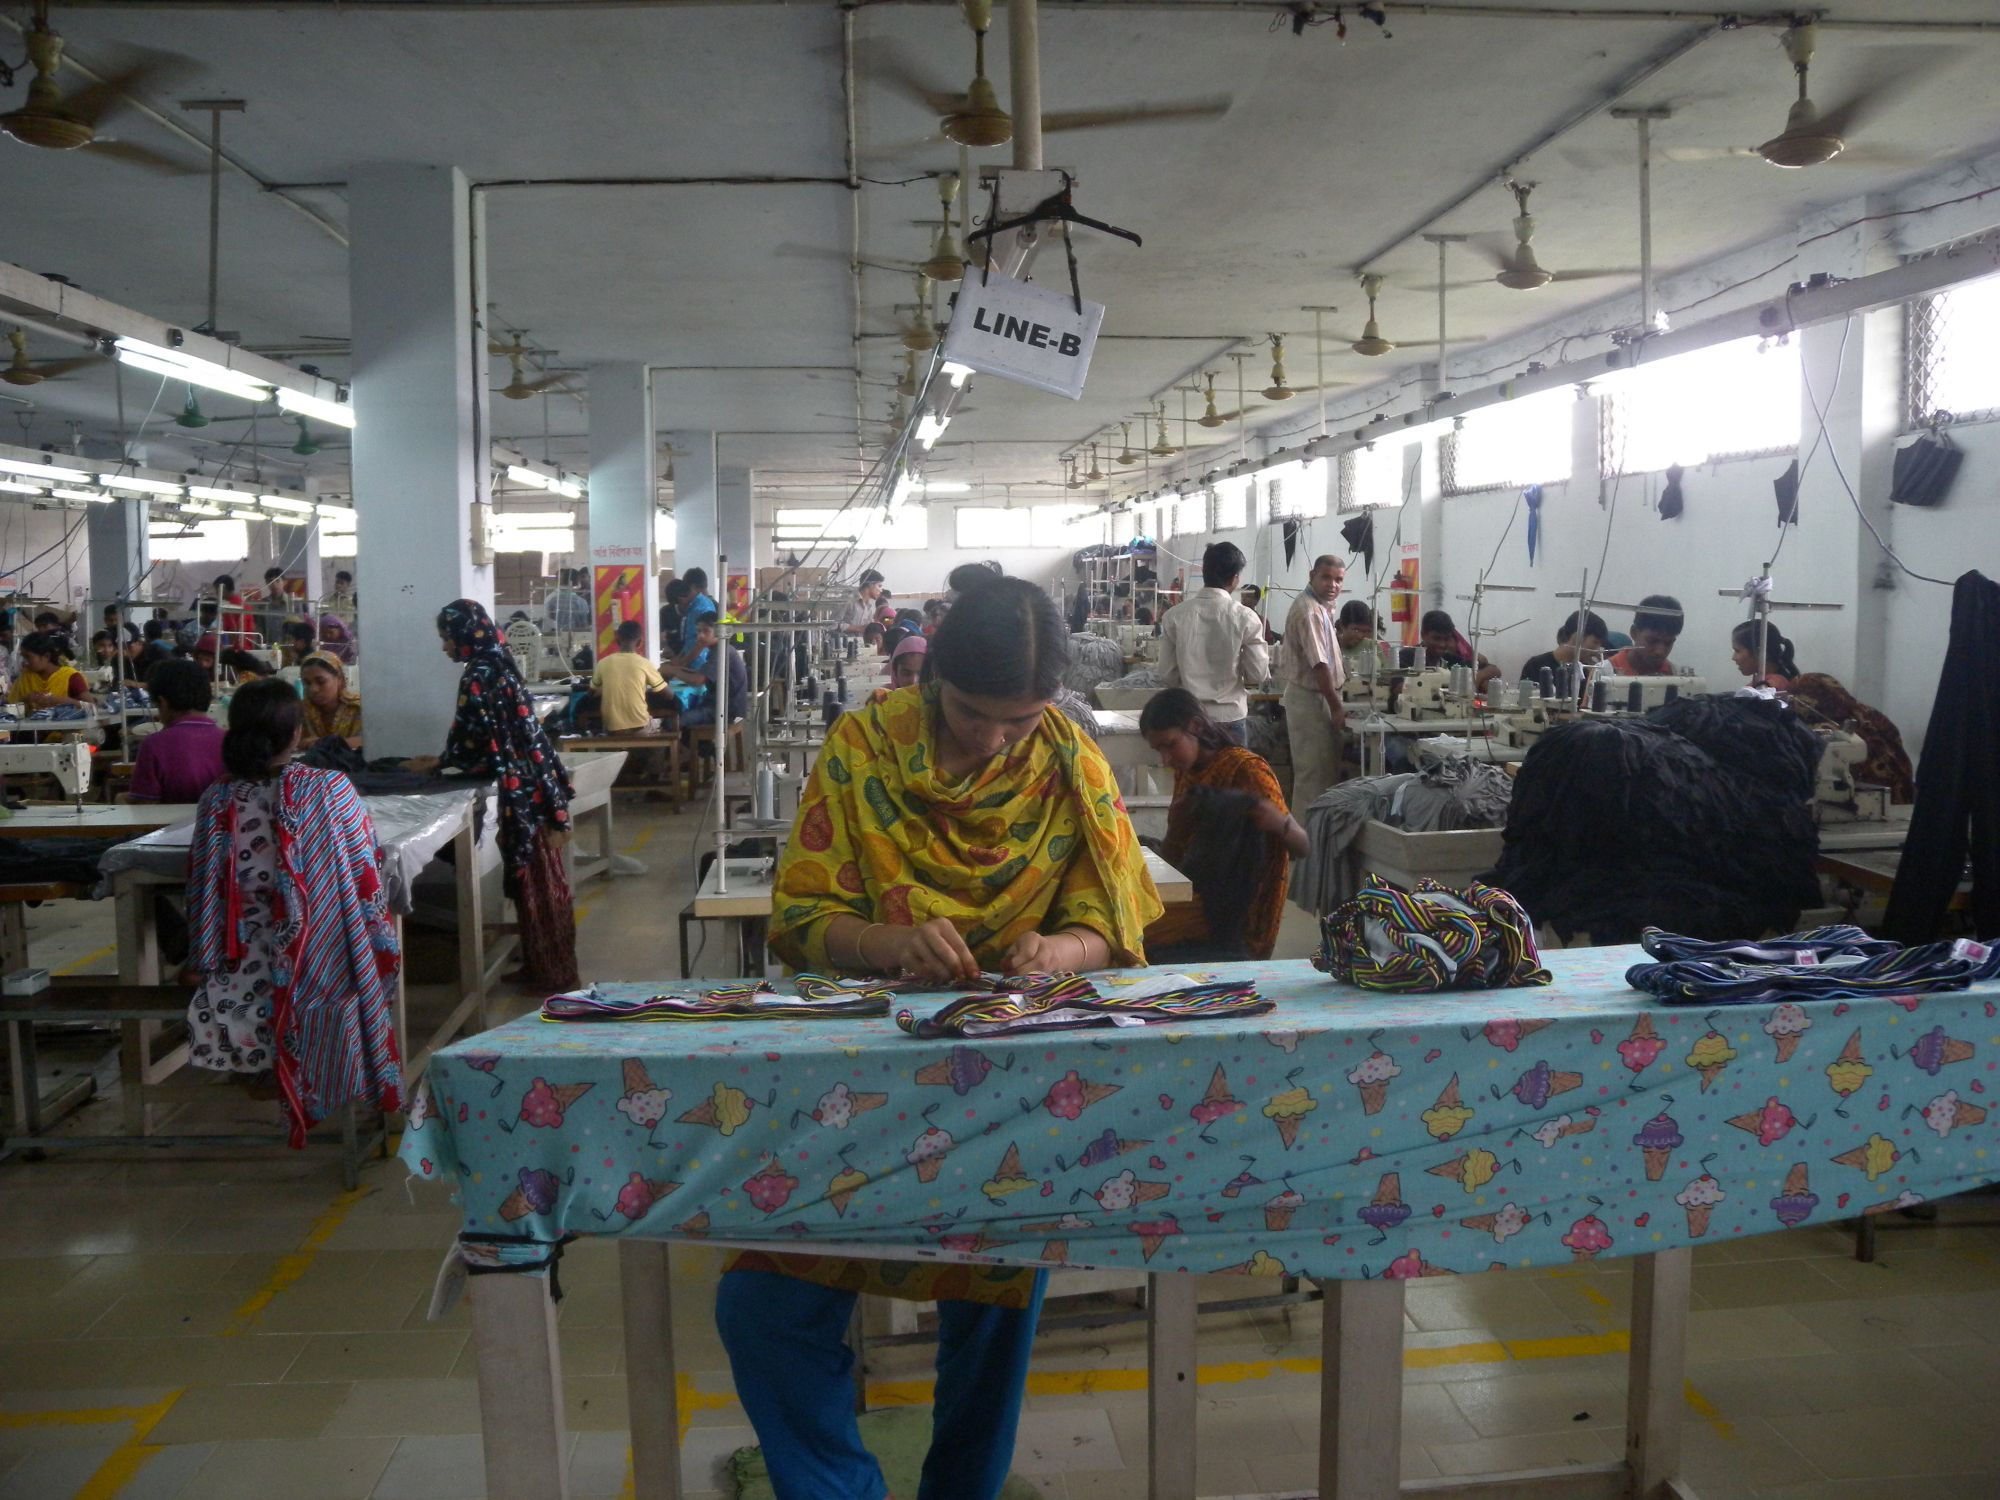 Who made your clothes? This image shows a garment factory in Bangladesh. The Rana Plaza garment factory in Bangladesh's capital Dhaka collapsed in 2013, killing more than a thousand workers. Photo CC-BY Tareq Salahuddin (source) https://www.flickr.com/photos/91431624@N00/5904028188